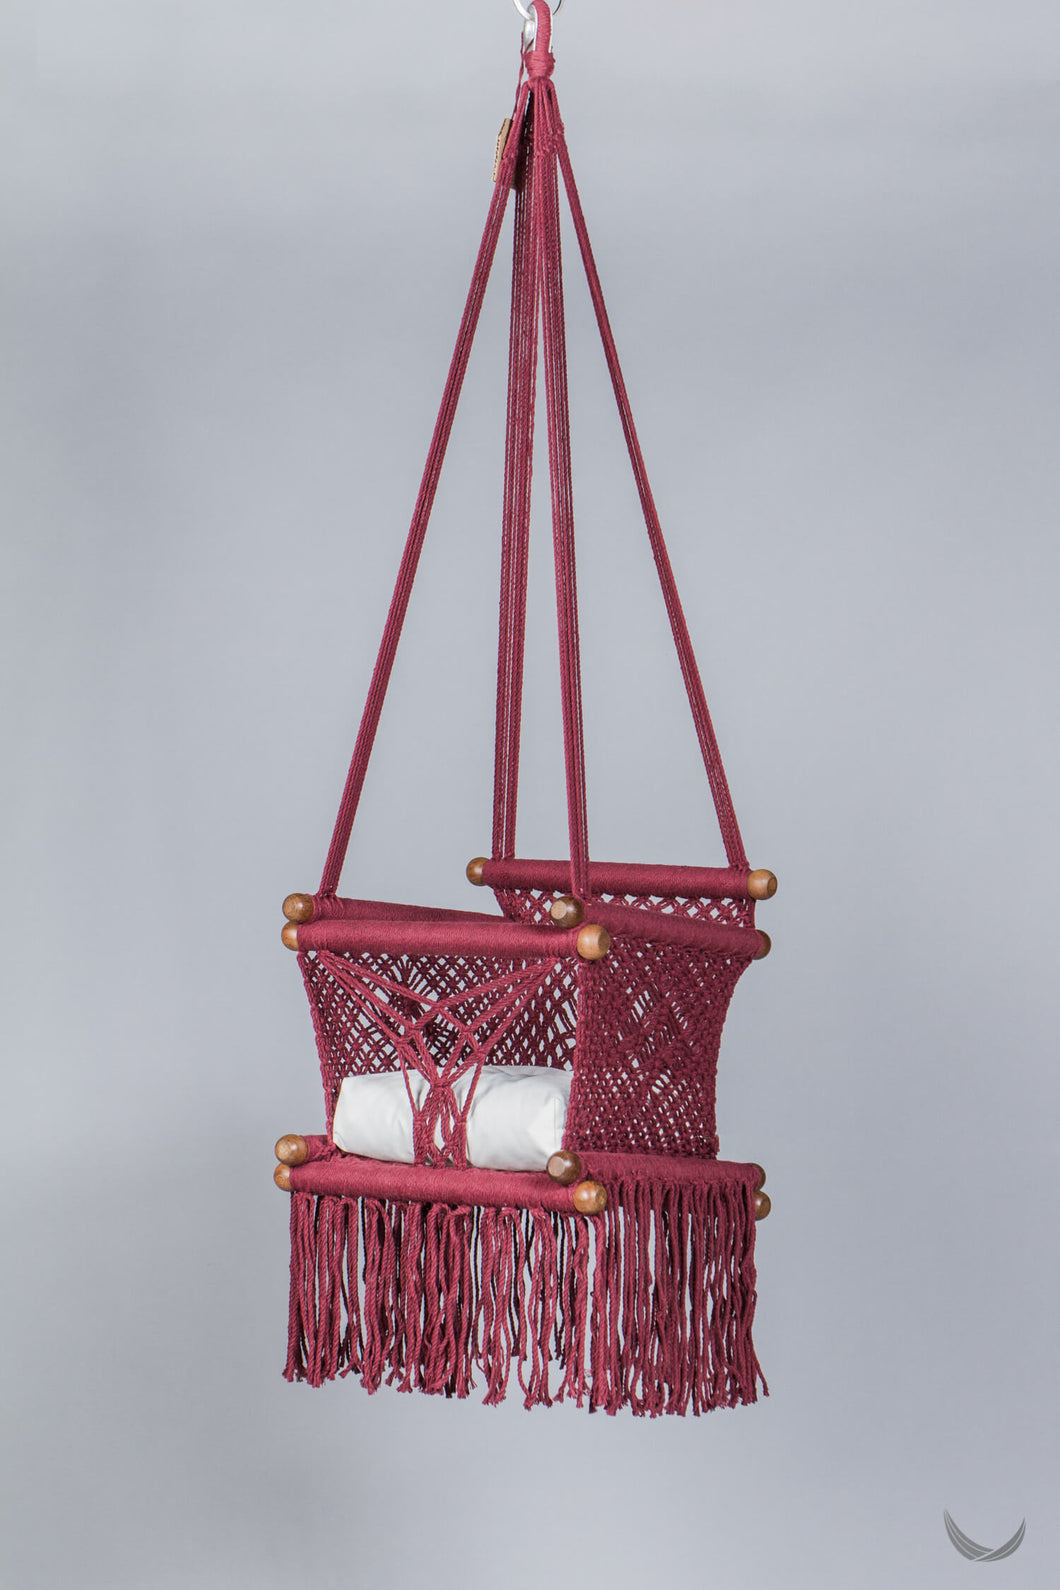 macrame swing  in bordeaux with off-white cushion